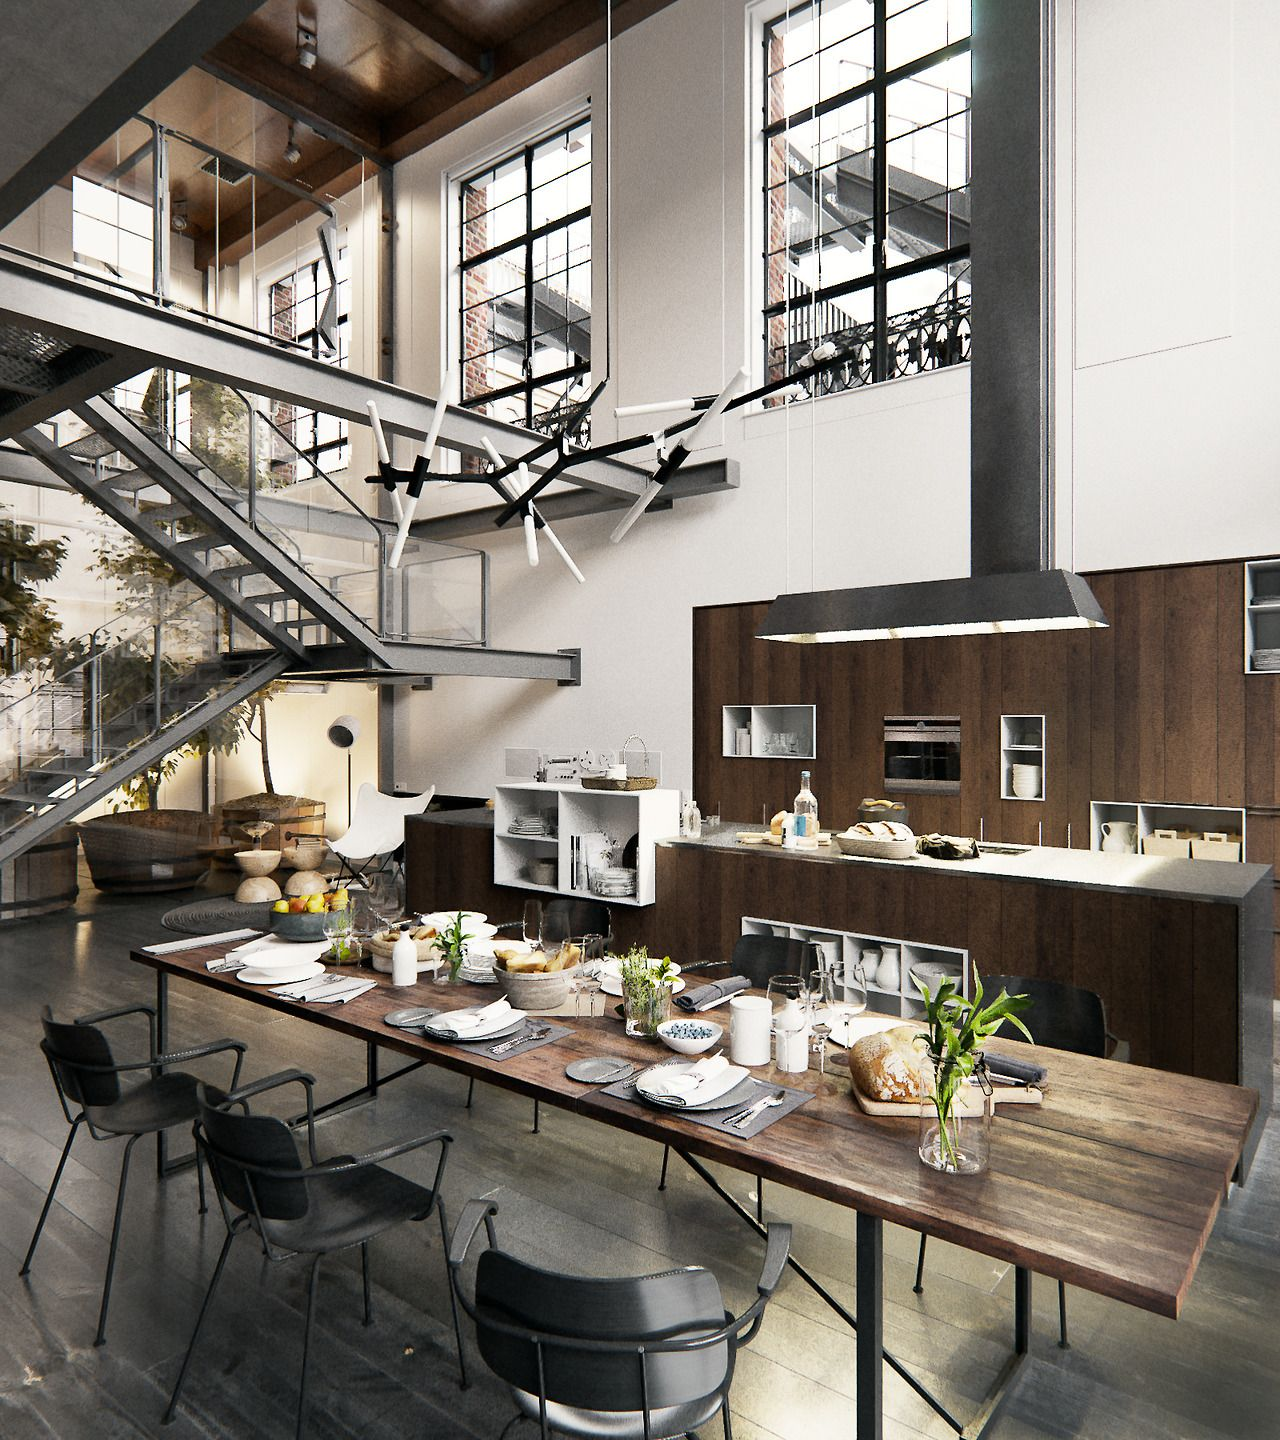 new york loft kitchen industrial and loft living pinterest loft interiors loft design and. Black Bedroom Furniture Sets. Home Design Ideas